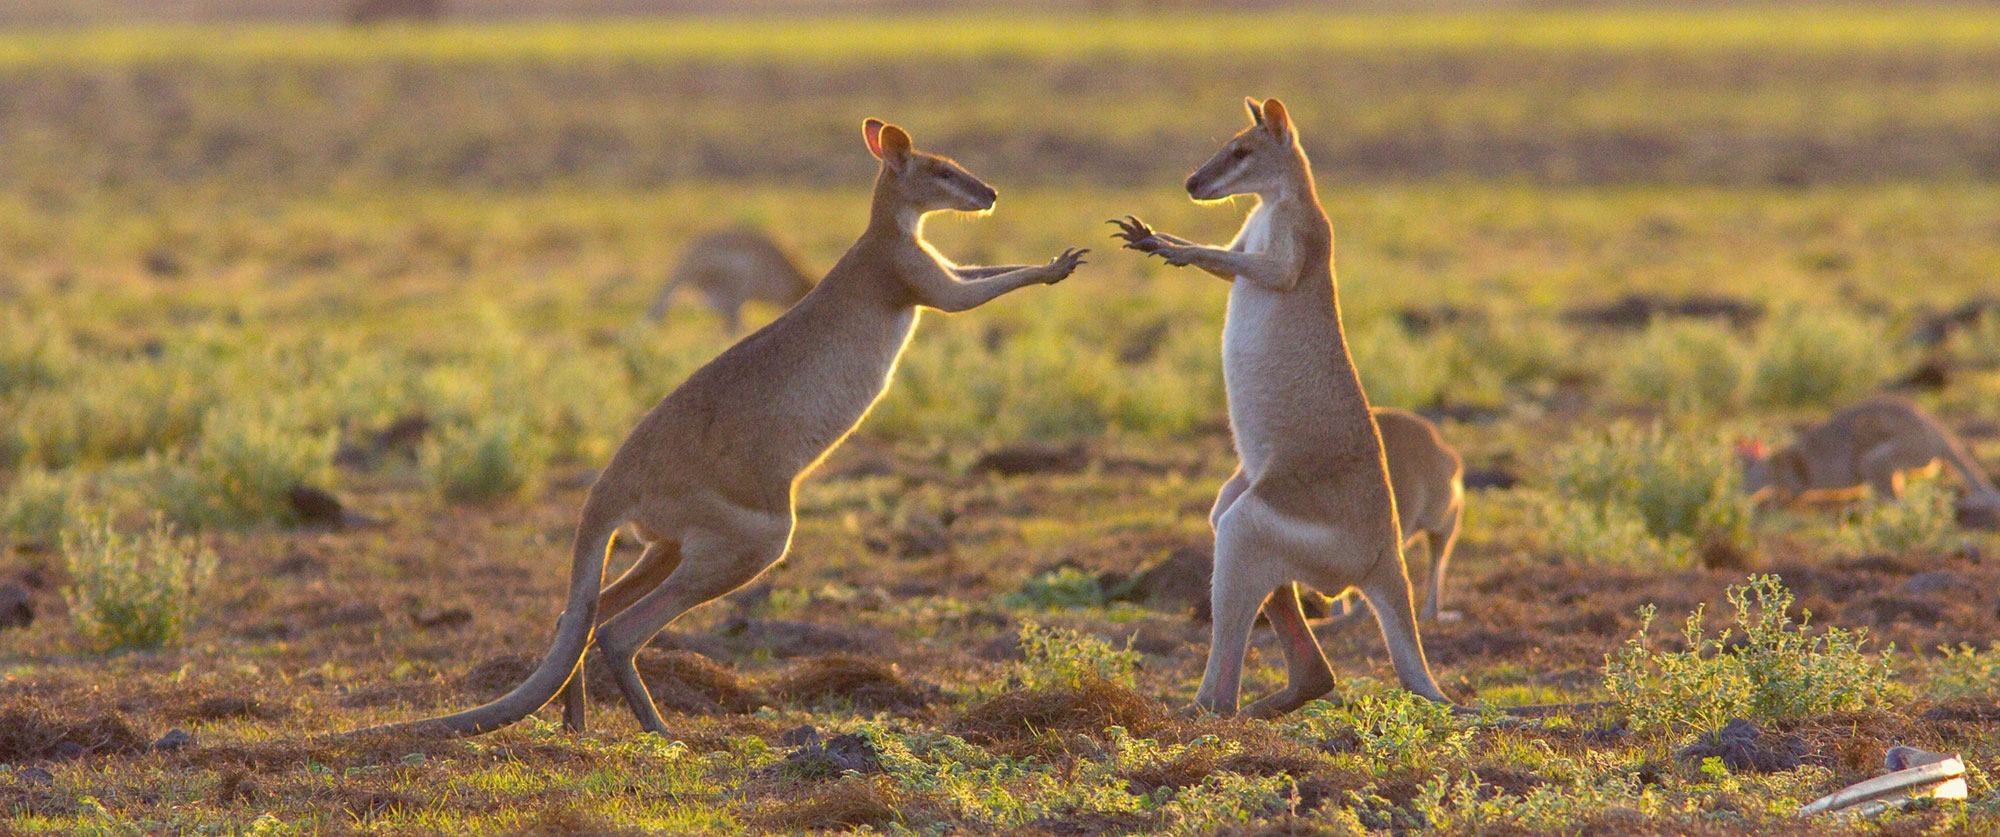 Escorted Australia Vacation Packages: Outback Culture Tour - Wallabies in the Mary River Wetlands, Top End